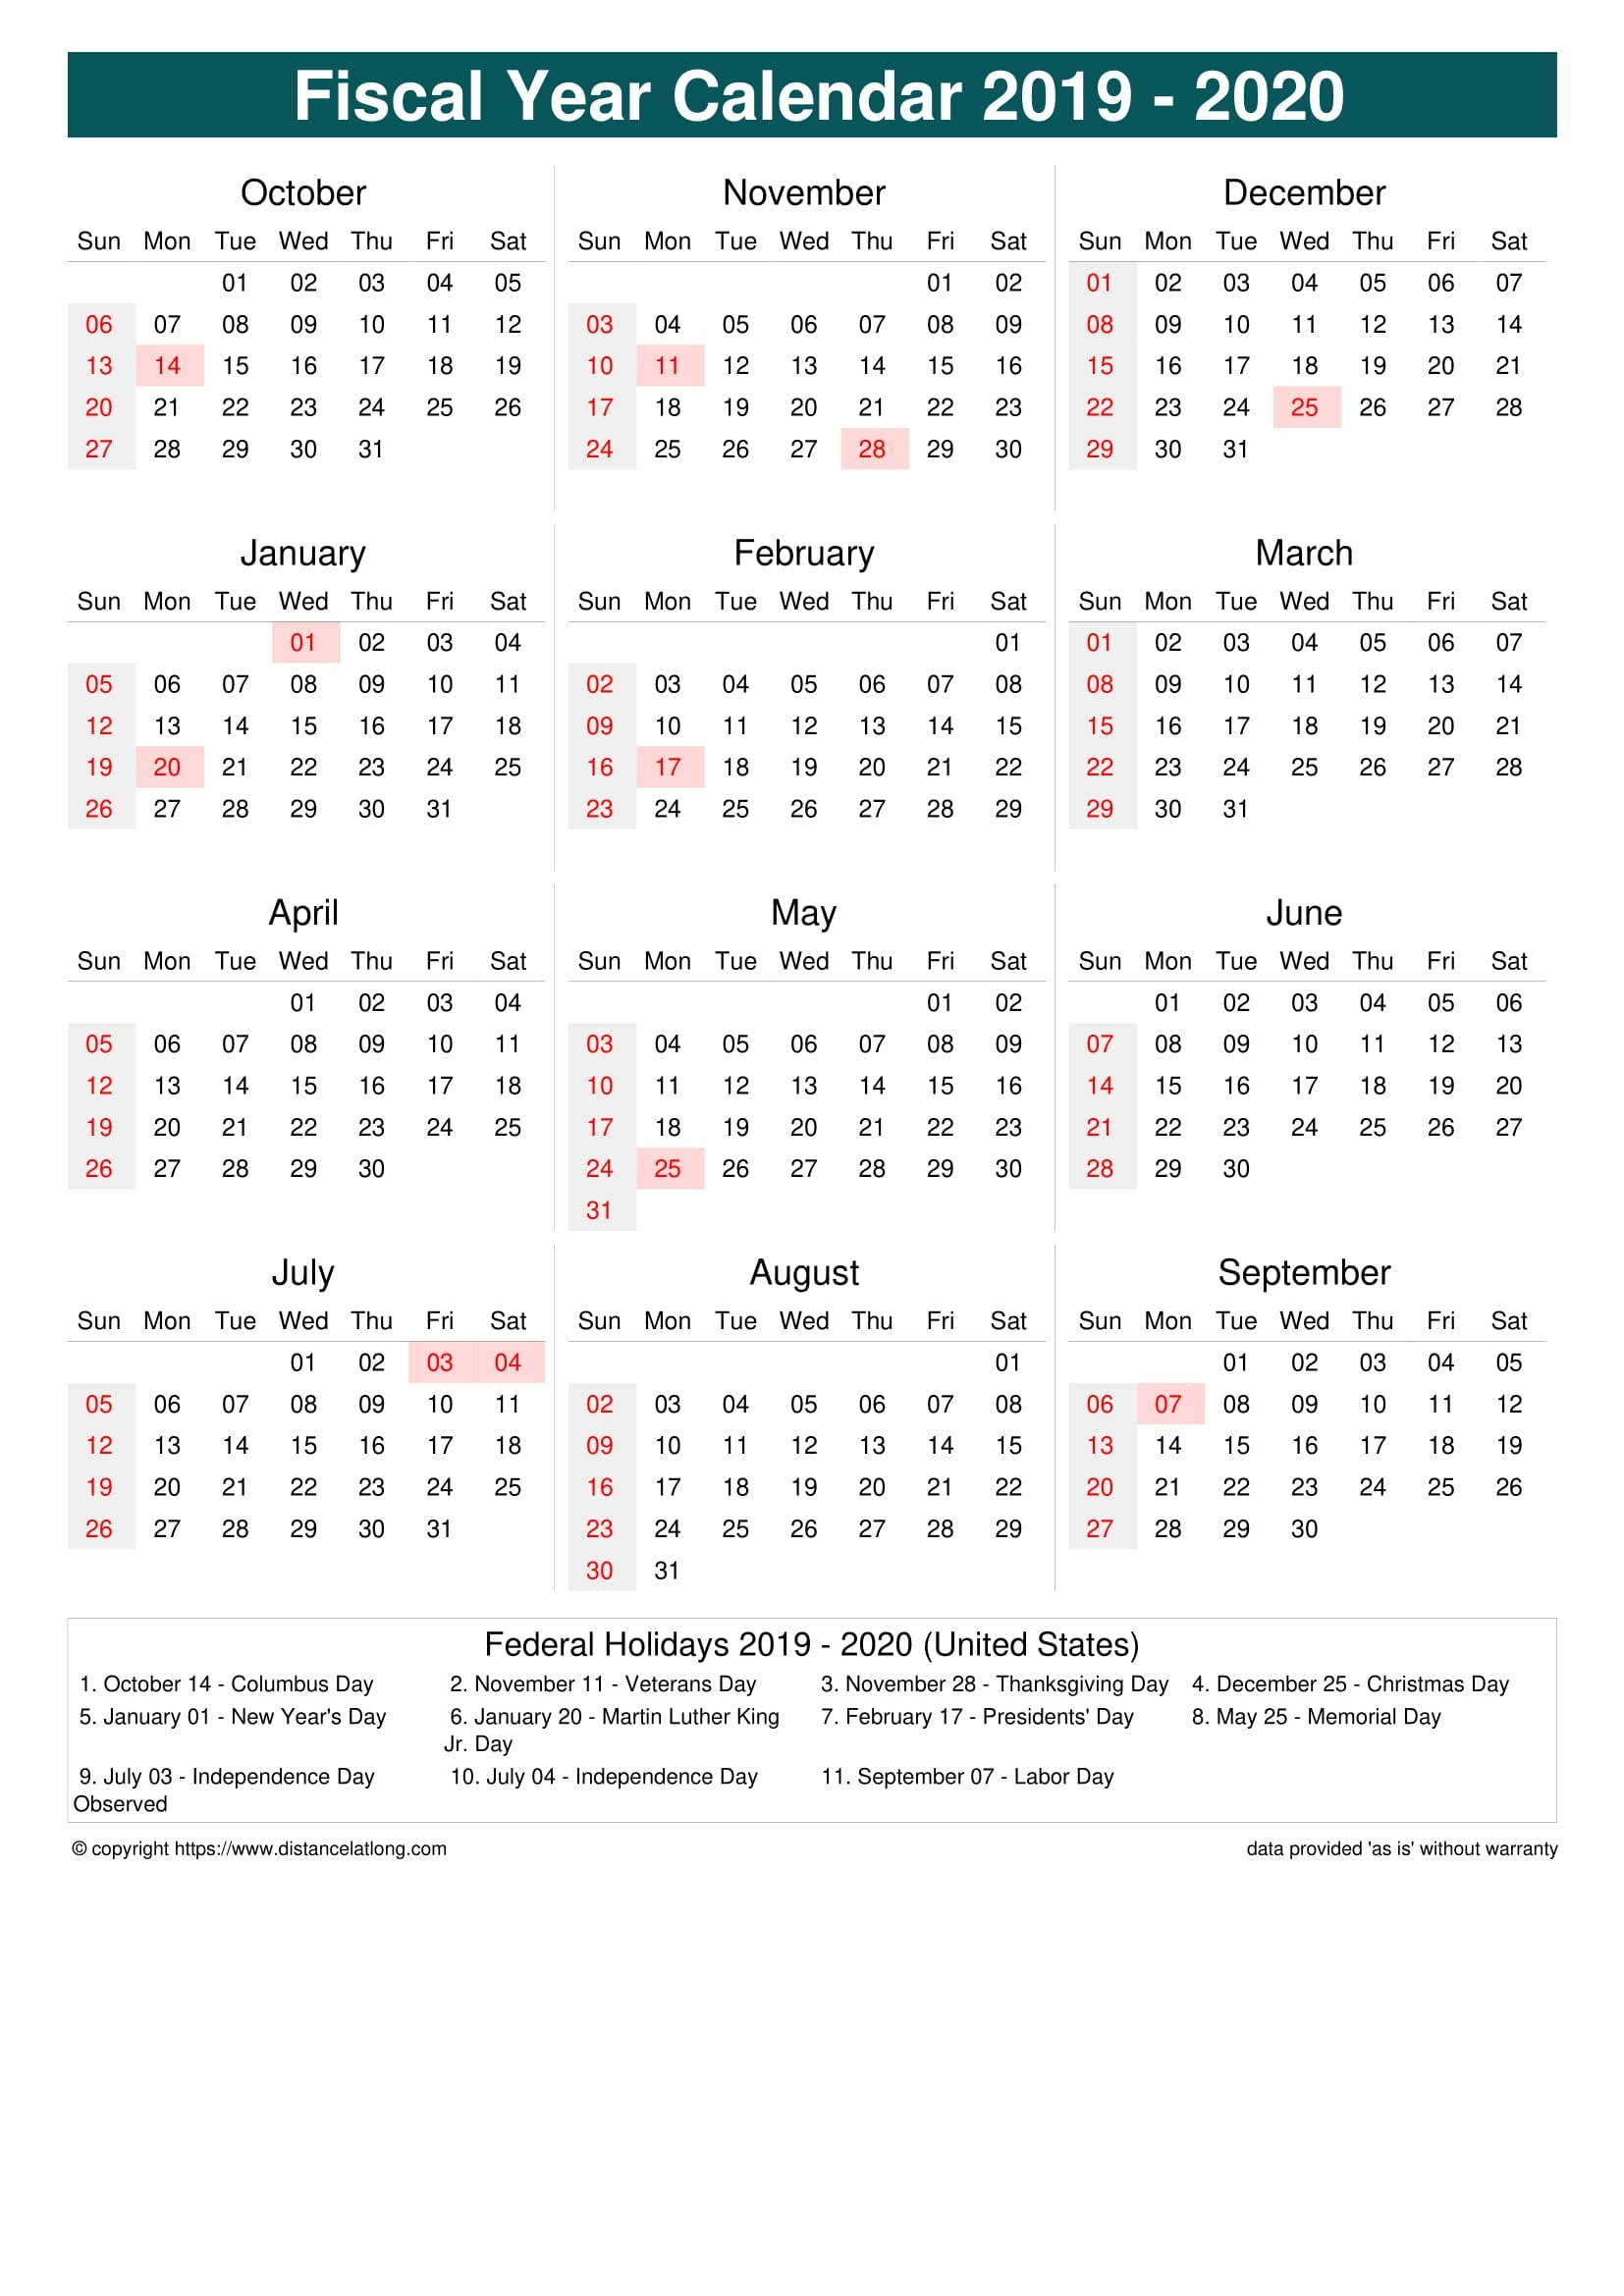 Fiscal Year 2019-2020 Calendar Templates, Free Printable